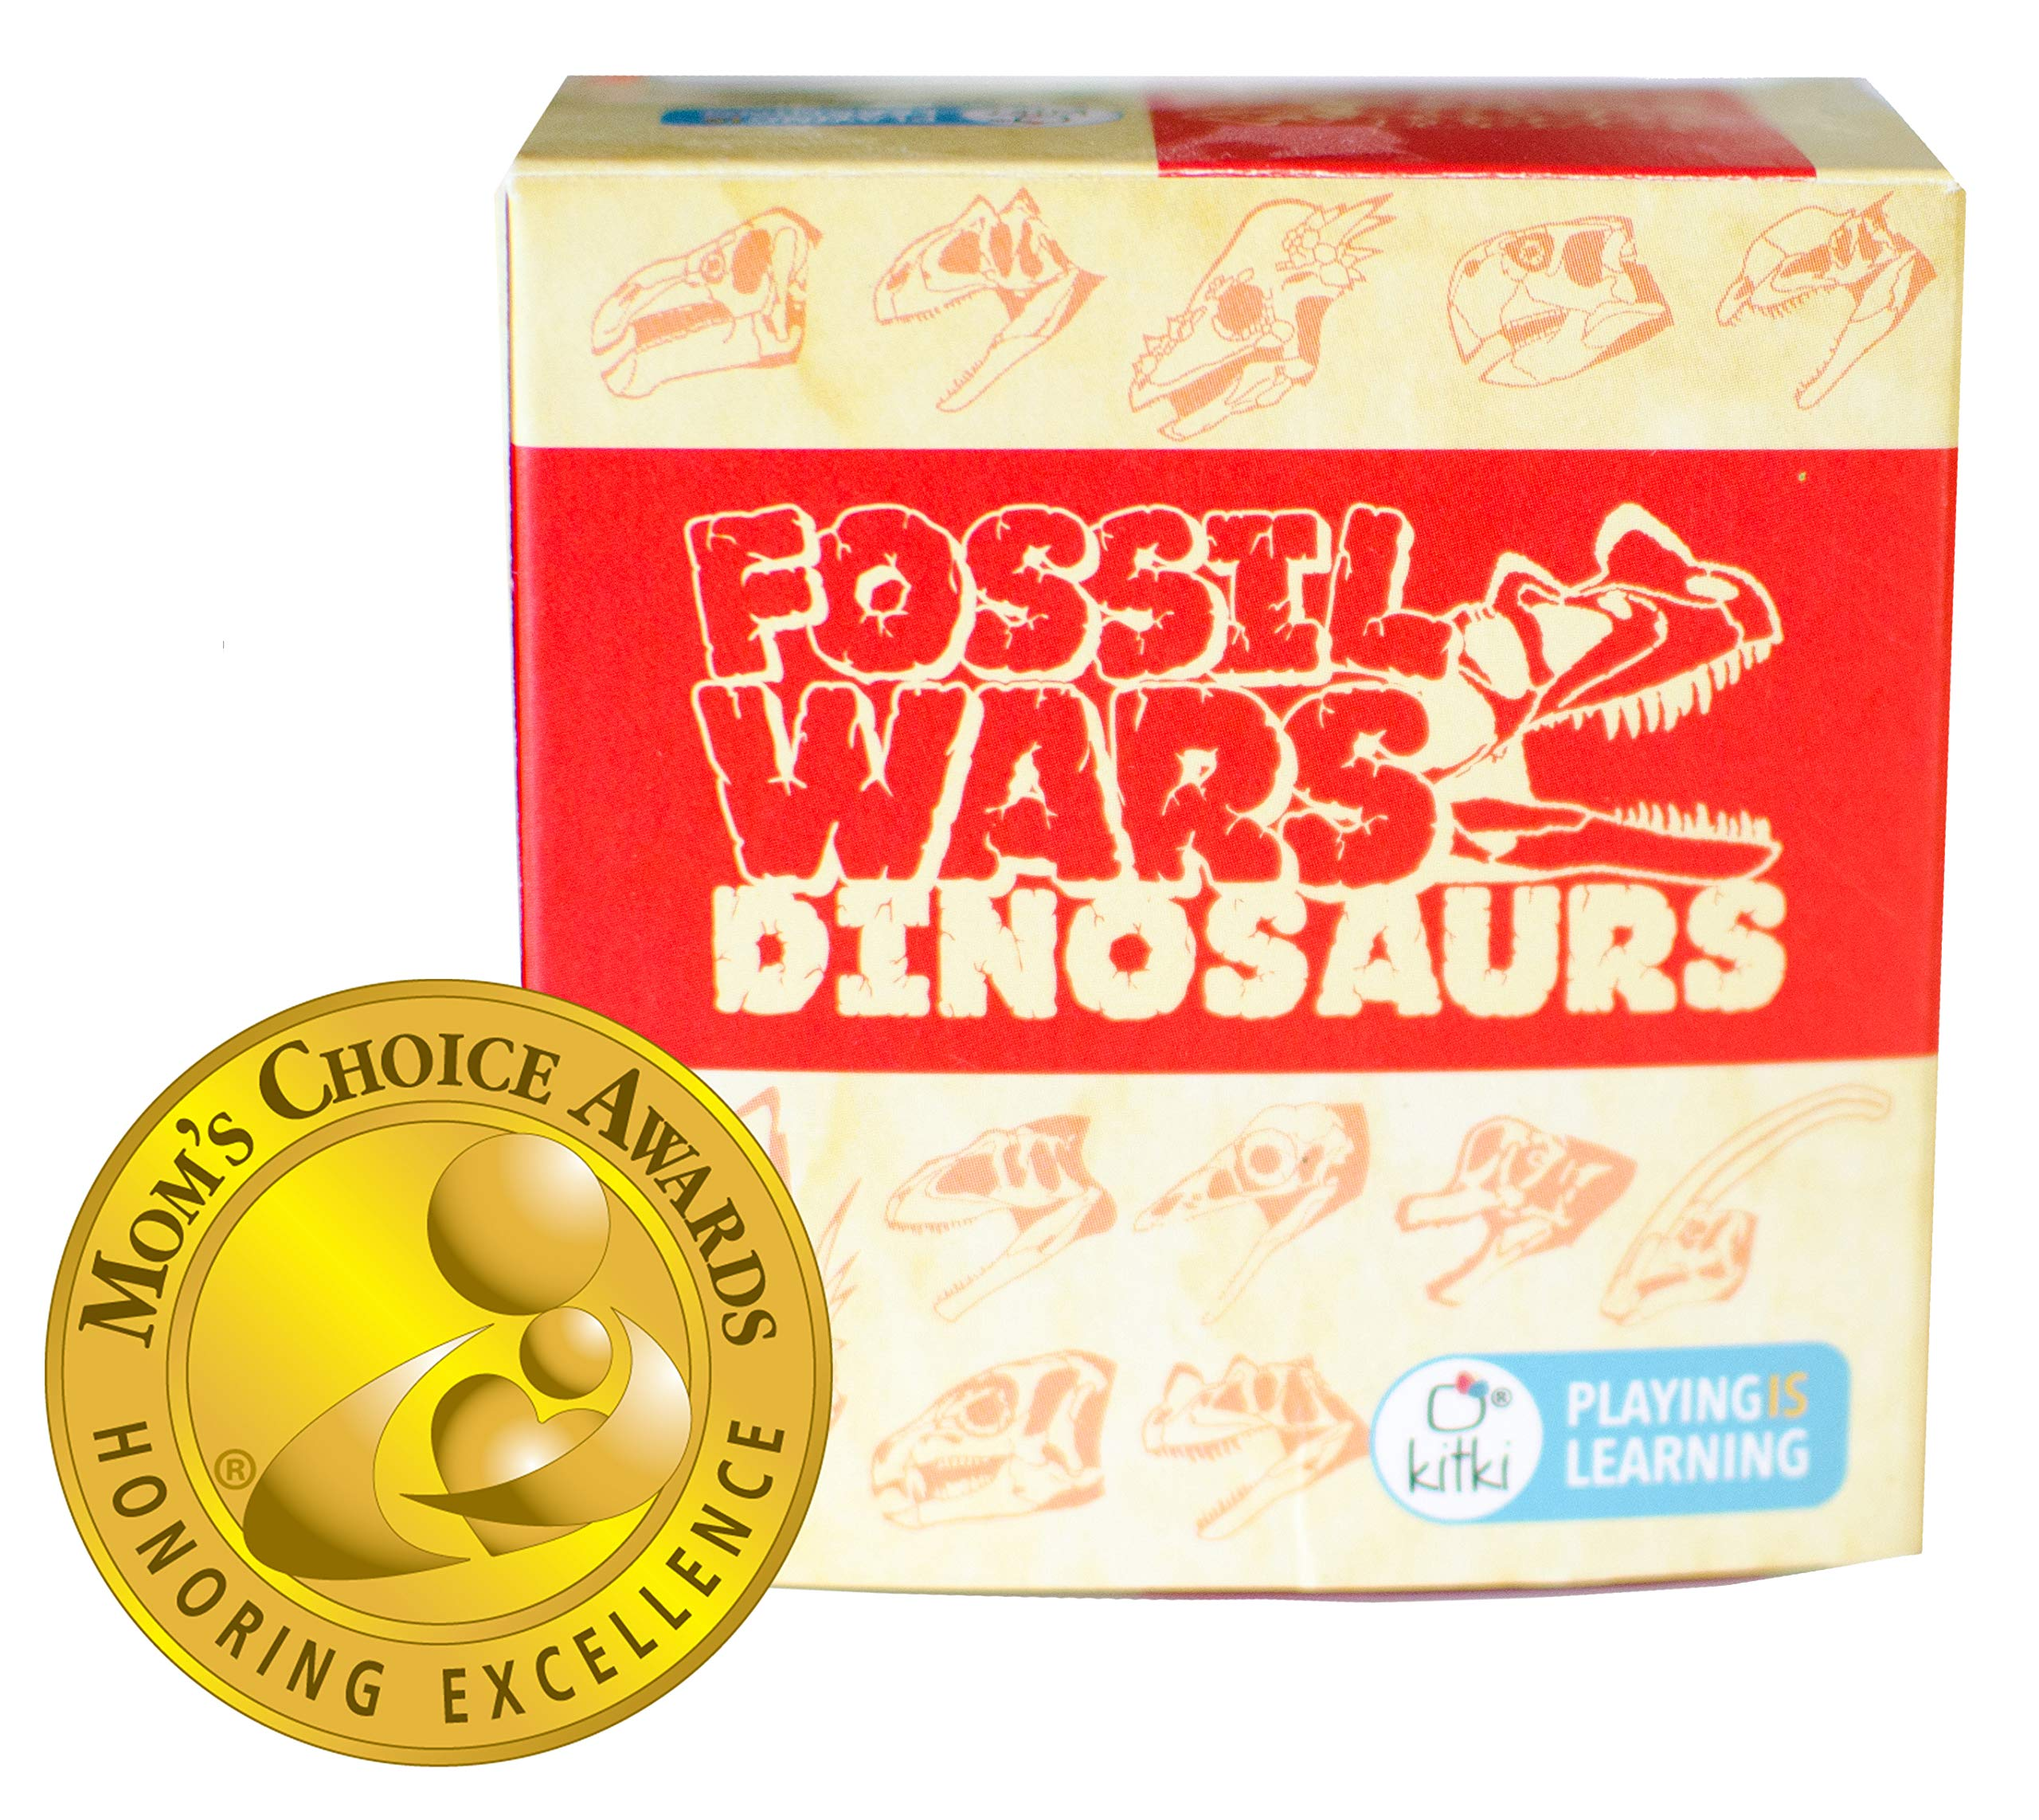 Kitki Fossil Wars Dinosaurs Game Stem Science Trivia Toy for Kids of Ages 8 and Up